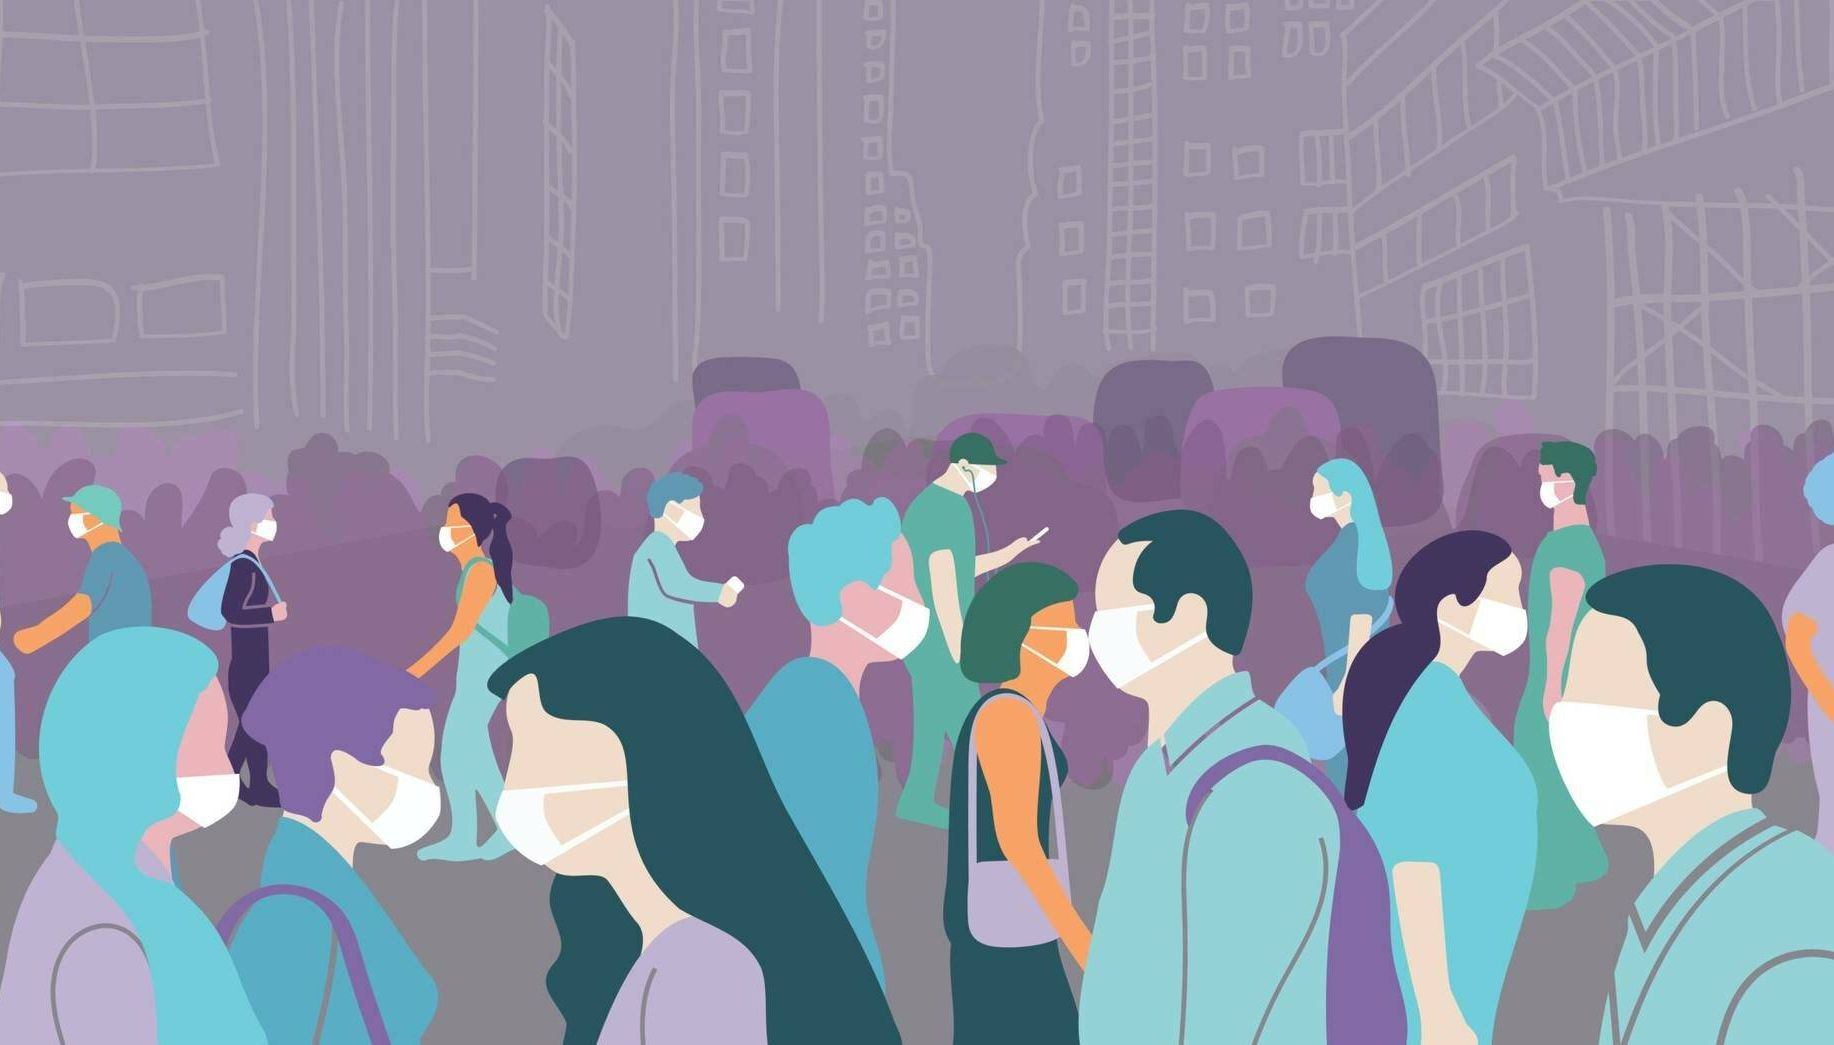 Illustration of crowd walking in a large city during covid-19 pandemic wearing face mask to protect themselves. Rewire PBS Health Covid anxiety